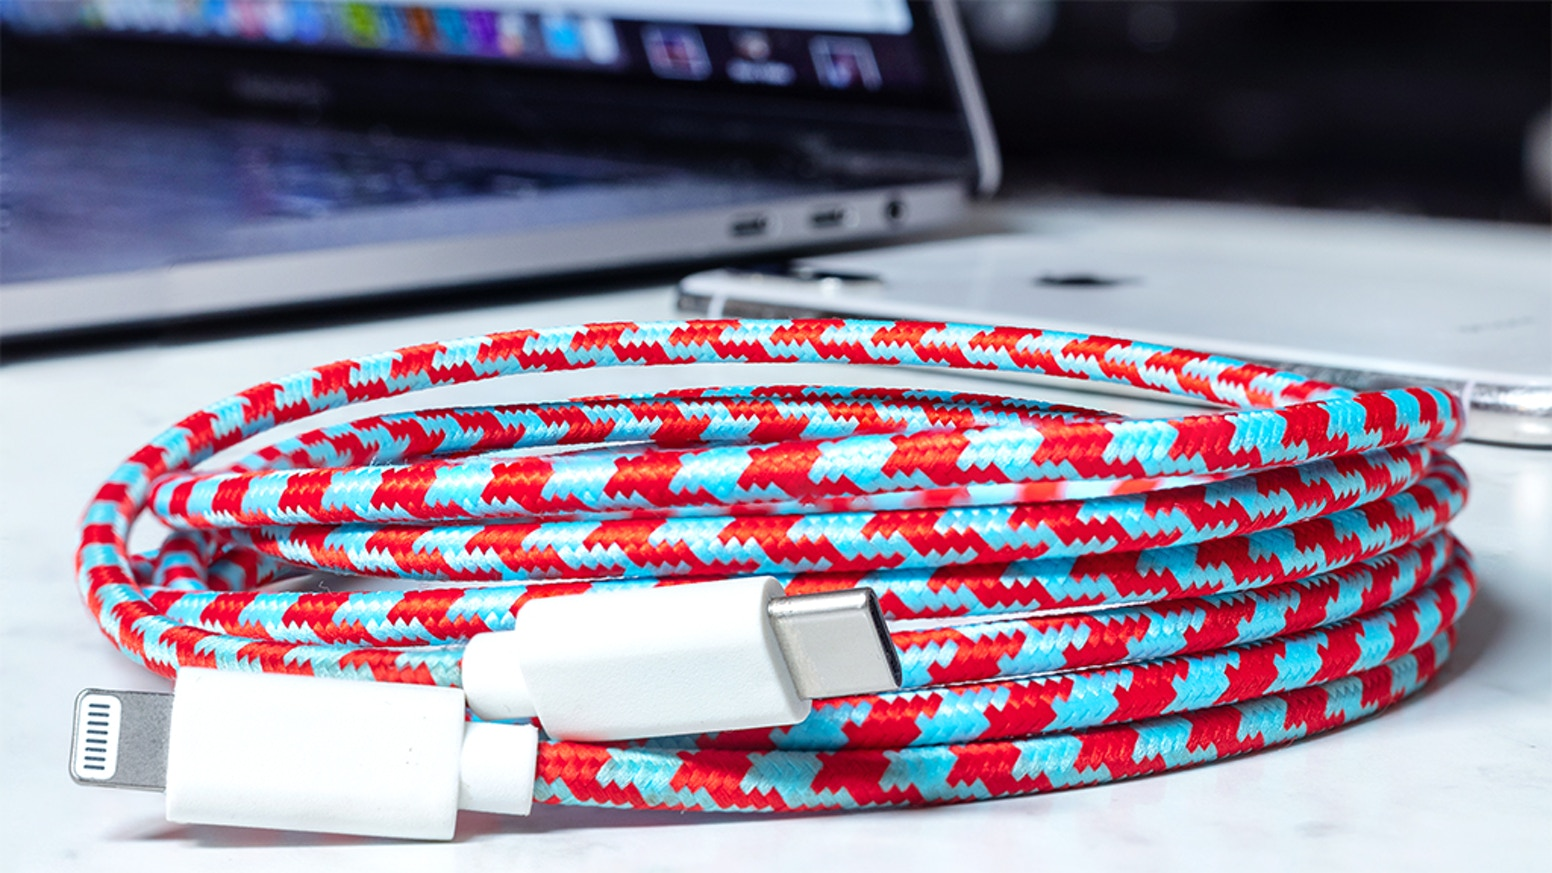 Ditch the dongles and start Fast Charging your Apple Devices with our Apple MFI Lightning to USB C Cables from Eastern Collective.